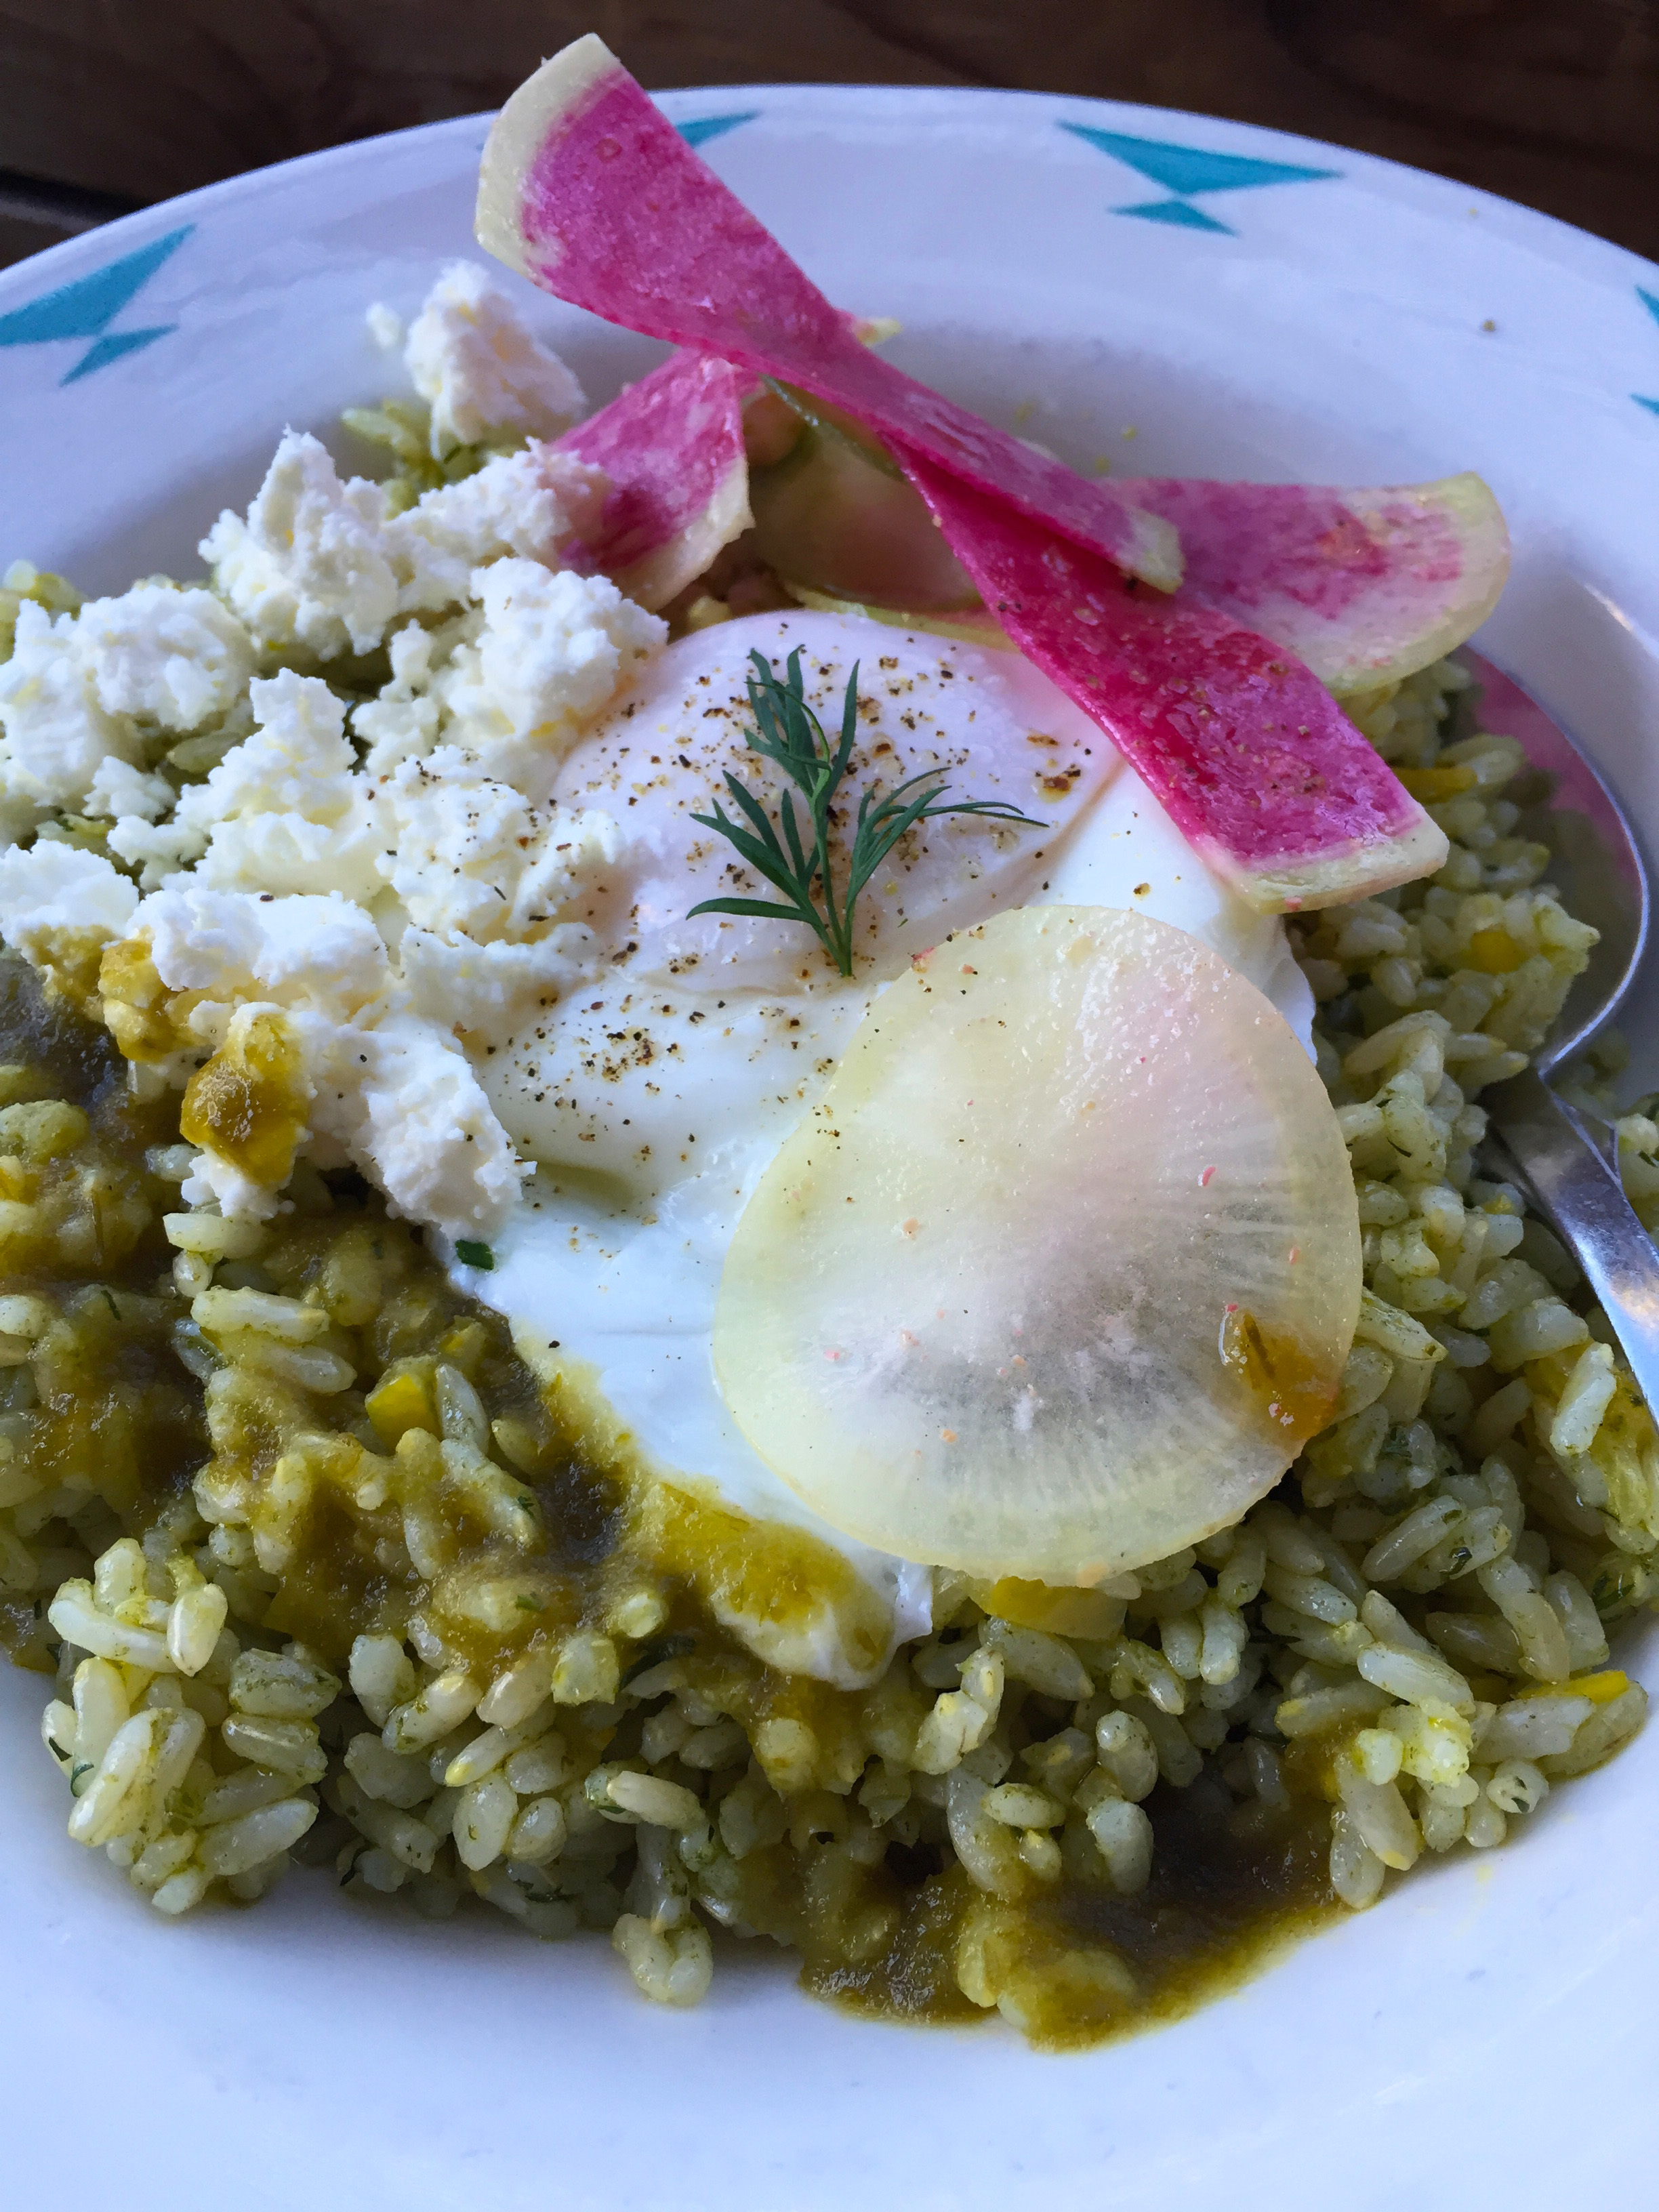 Sorrel Pesto Rice Bowl with Kokohu Rose Brown Rice, nut-free Sorrel Pesto, Preserved Meyer Lemon, Lacto Fermented Hot Sauce, Black Radish, French Sheep Feta, and a Poached Egg.